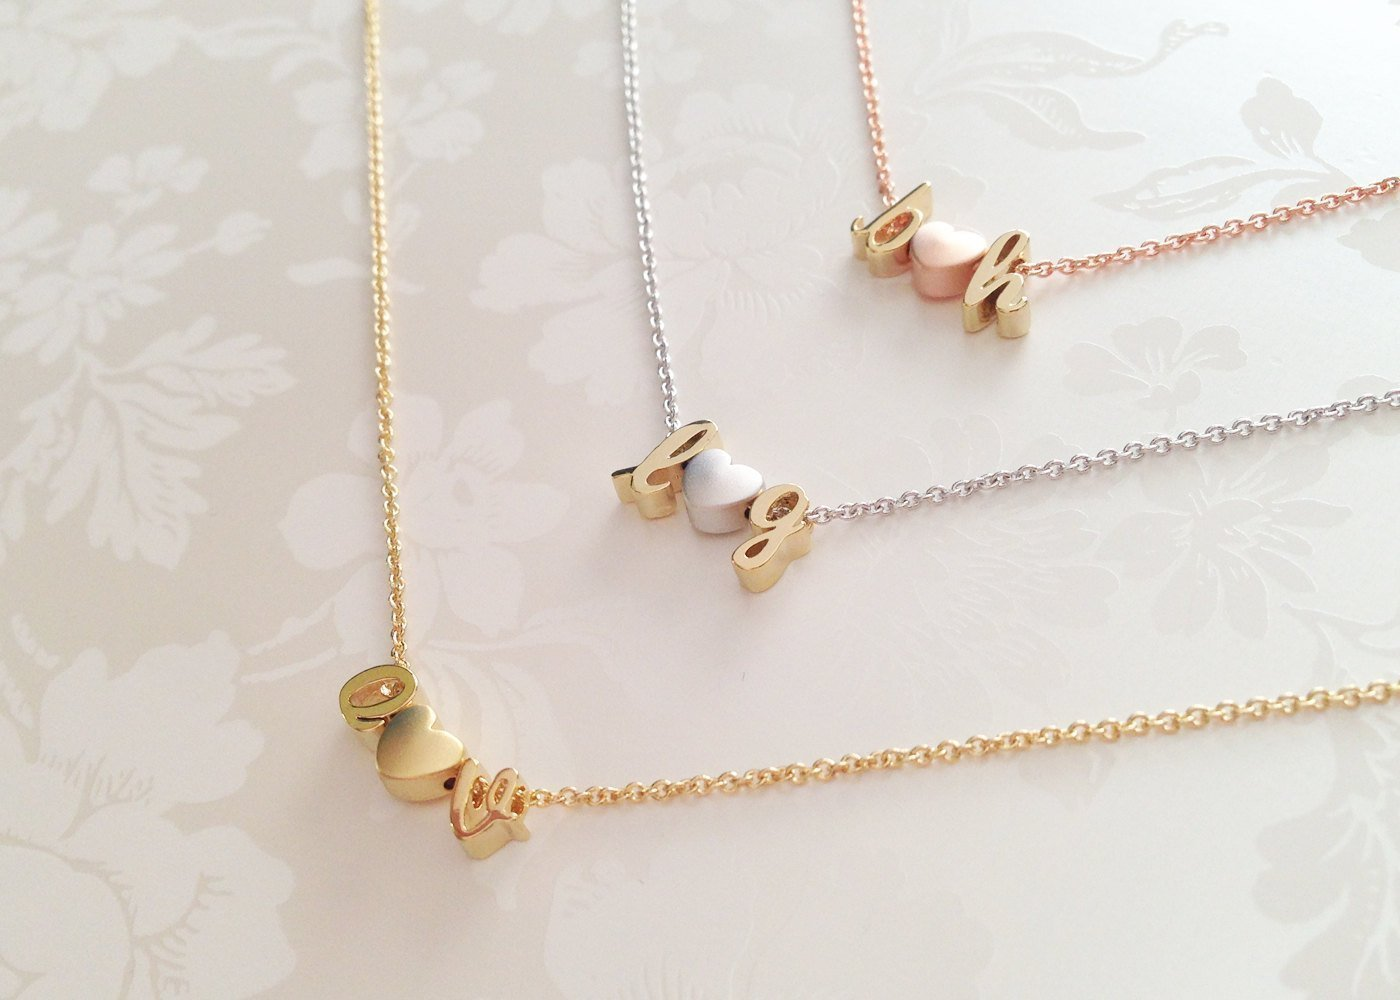 b drop delicate cw necklace products